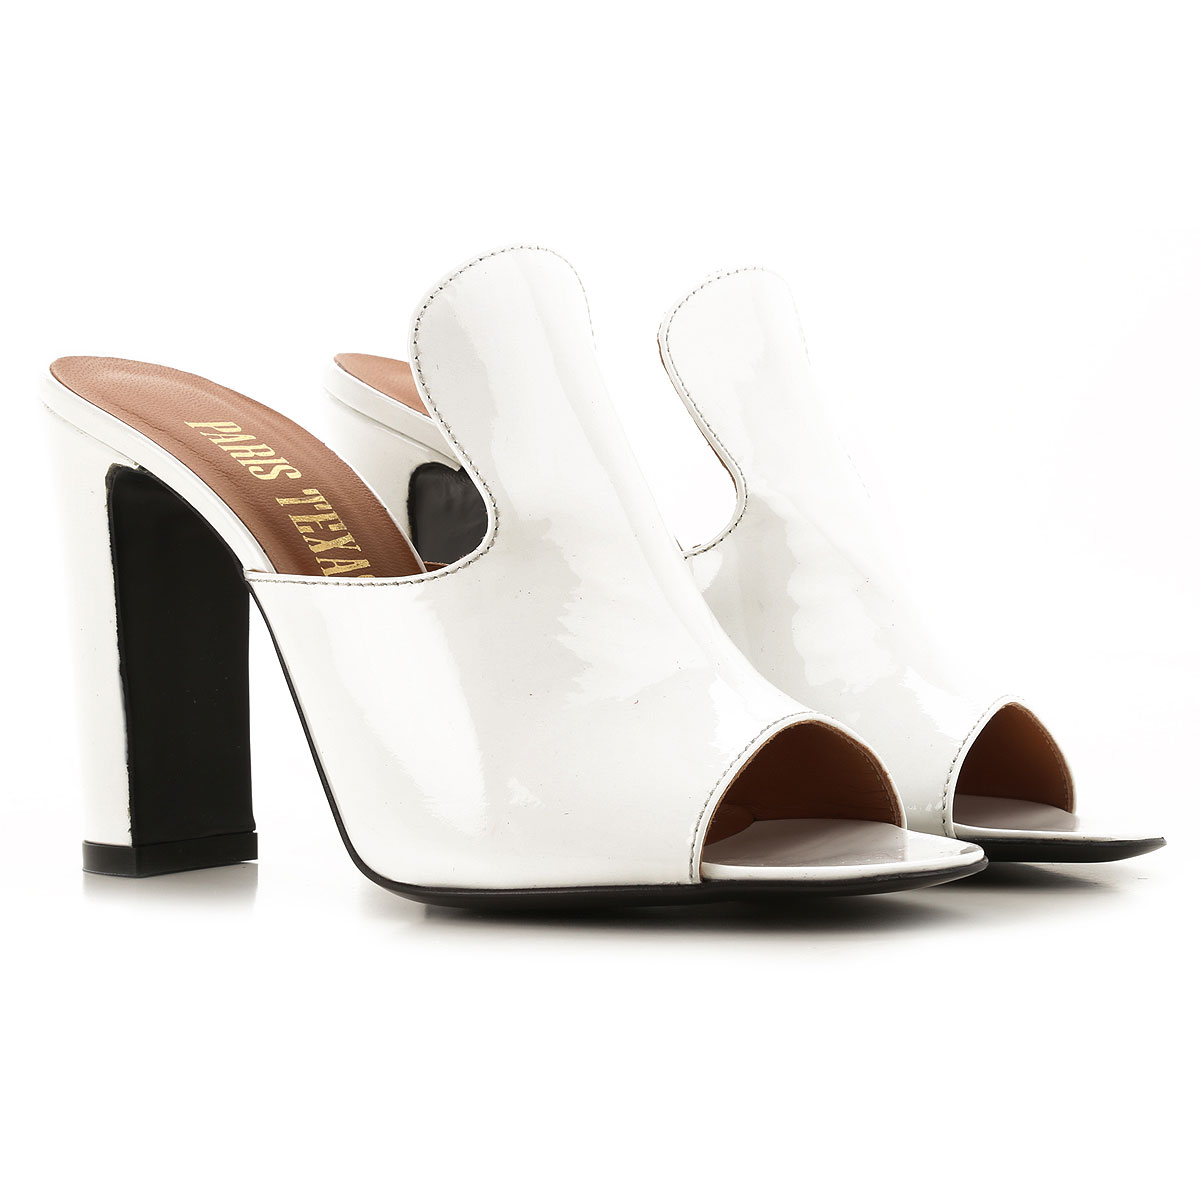 Paris Texas Sandals for Women On Sale in Outlet, White, Patent Leather, 2019, 8.5